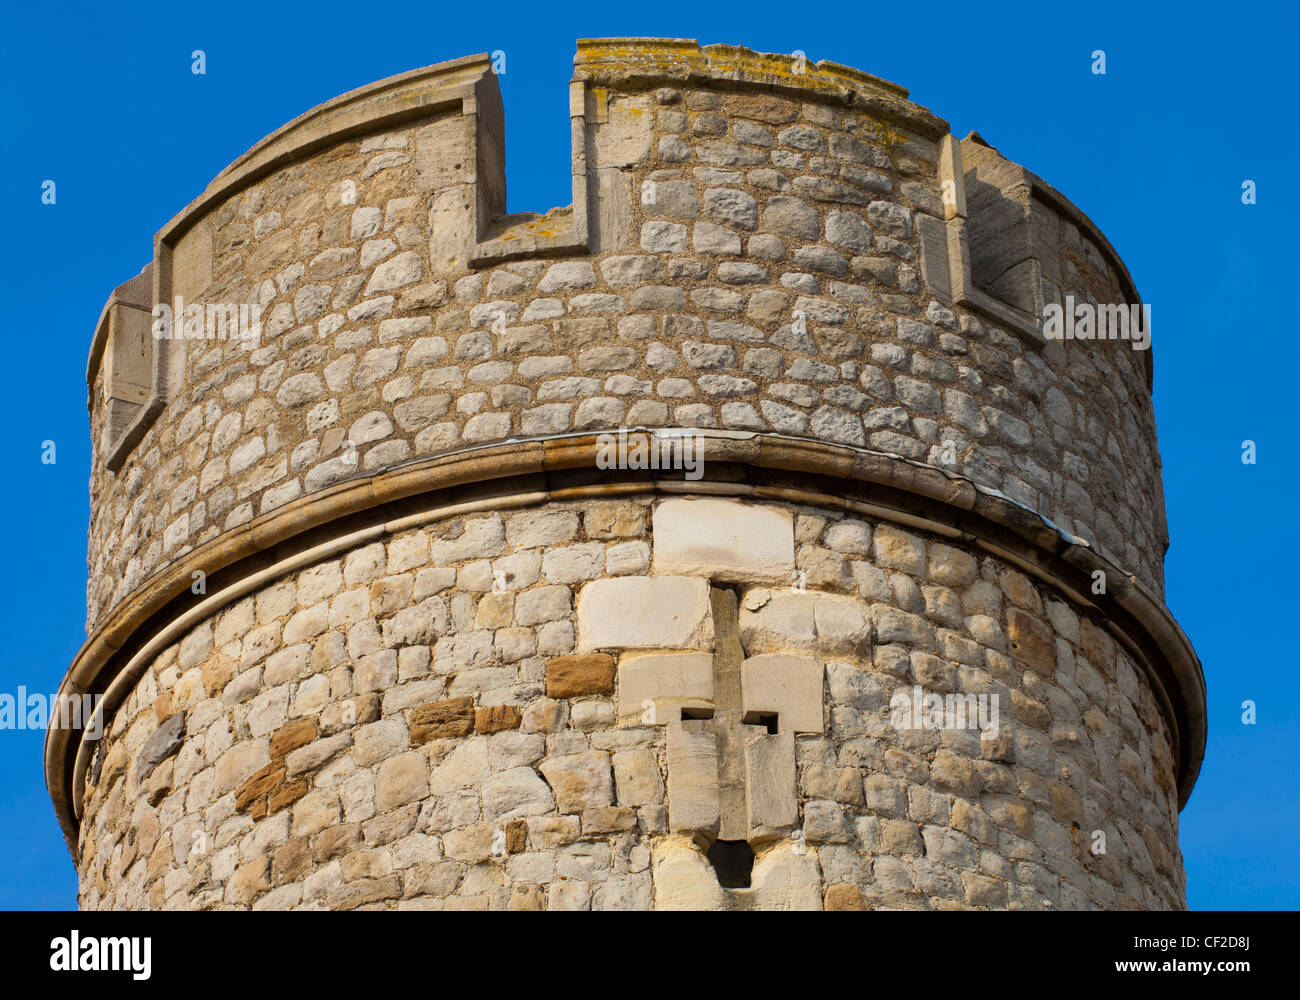 Close up view of one of the towers of the Tower of London, located on the north bank of the River Thames. Stock Photo